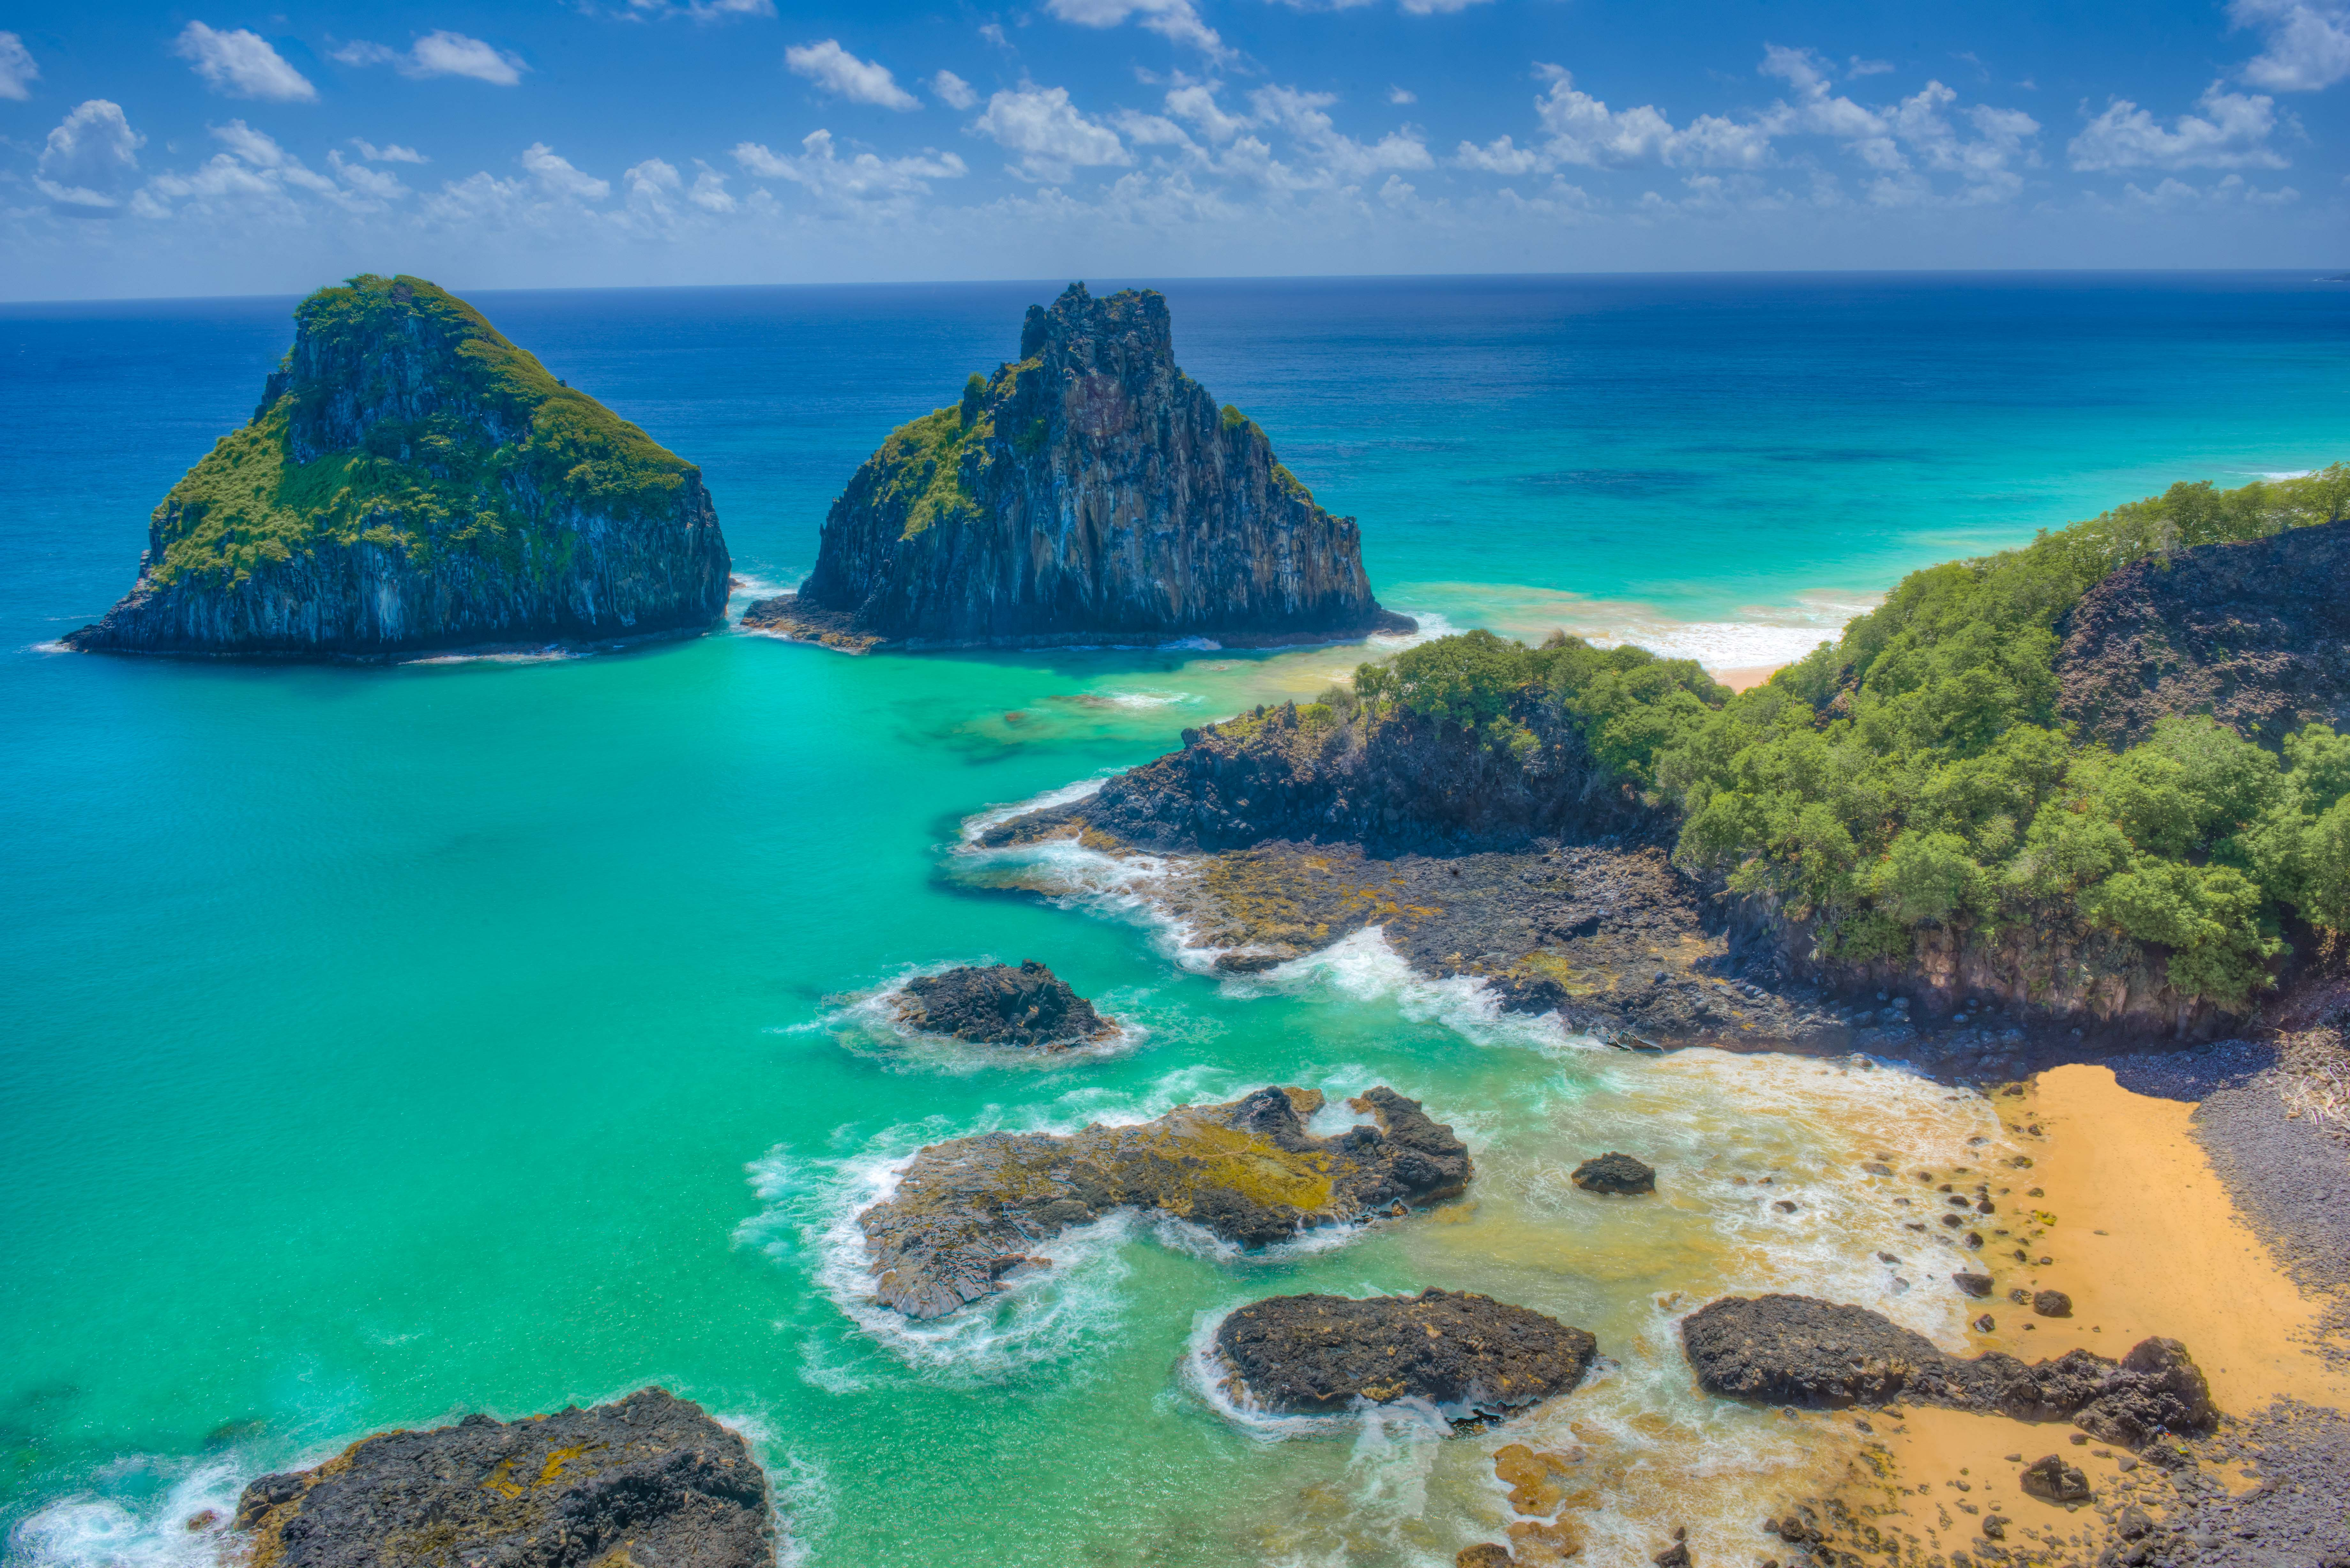 The Two Brothers Beach, Fernando De Noronha National Marine Park, Brazil Photographed by Tom Till